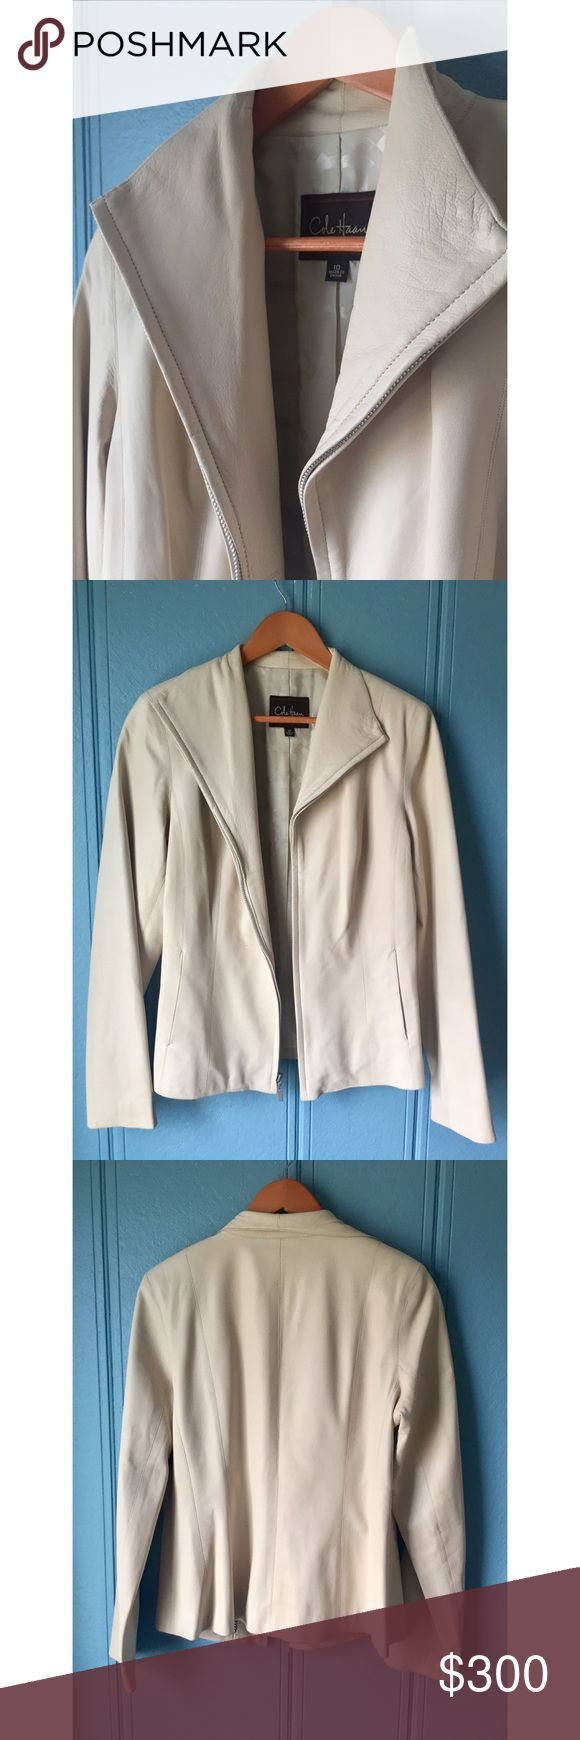 Cole Haan Cream-colored Lambskin Leather Jacket Good condition! Signs of wear, but no known damage. Exterior is Lambskin leather, lined with 50% nylon and 50% acetate. Two outside pockets and two inside pockets. Cole Haan Jackets & Coats